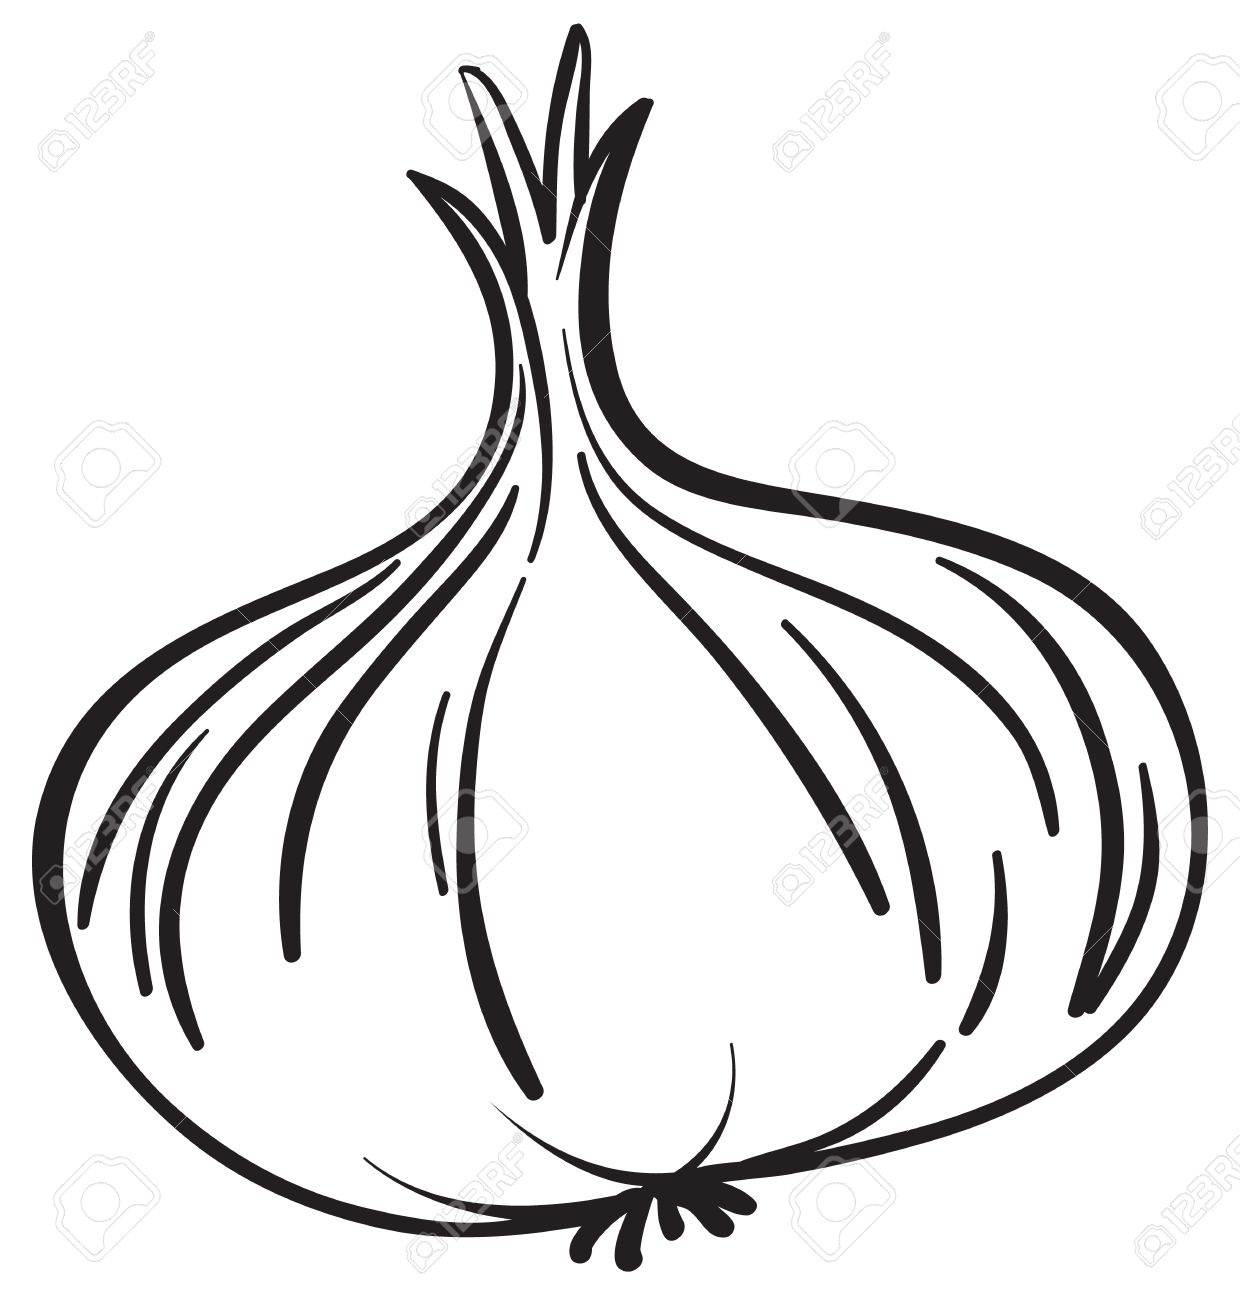 Black and white letters. Onion clipart